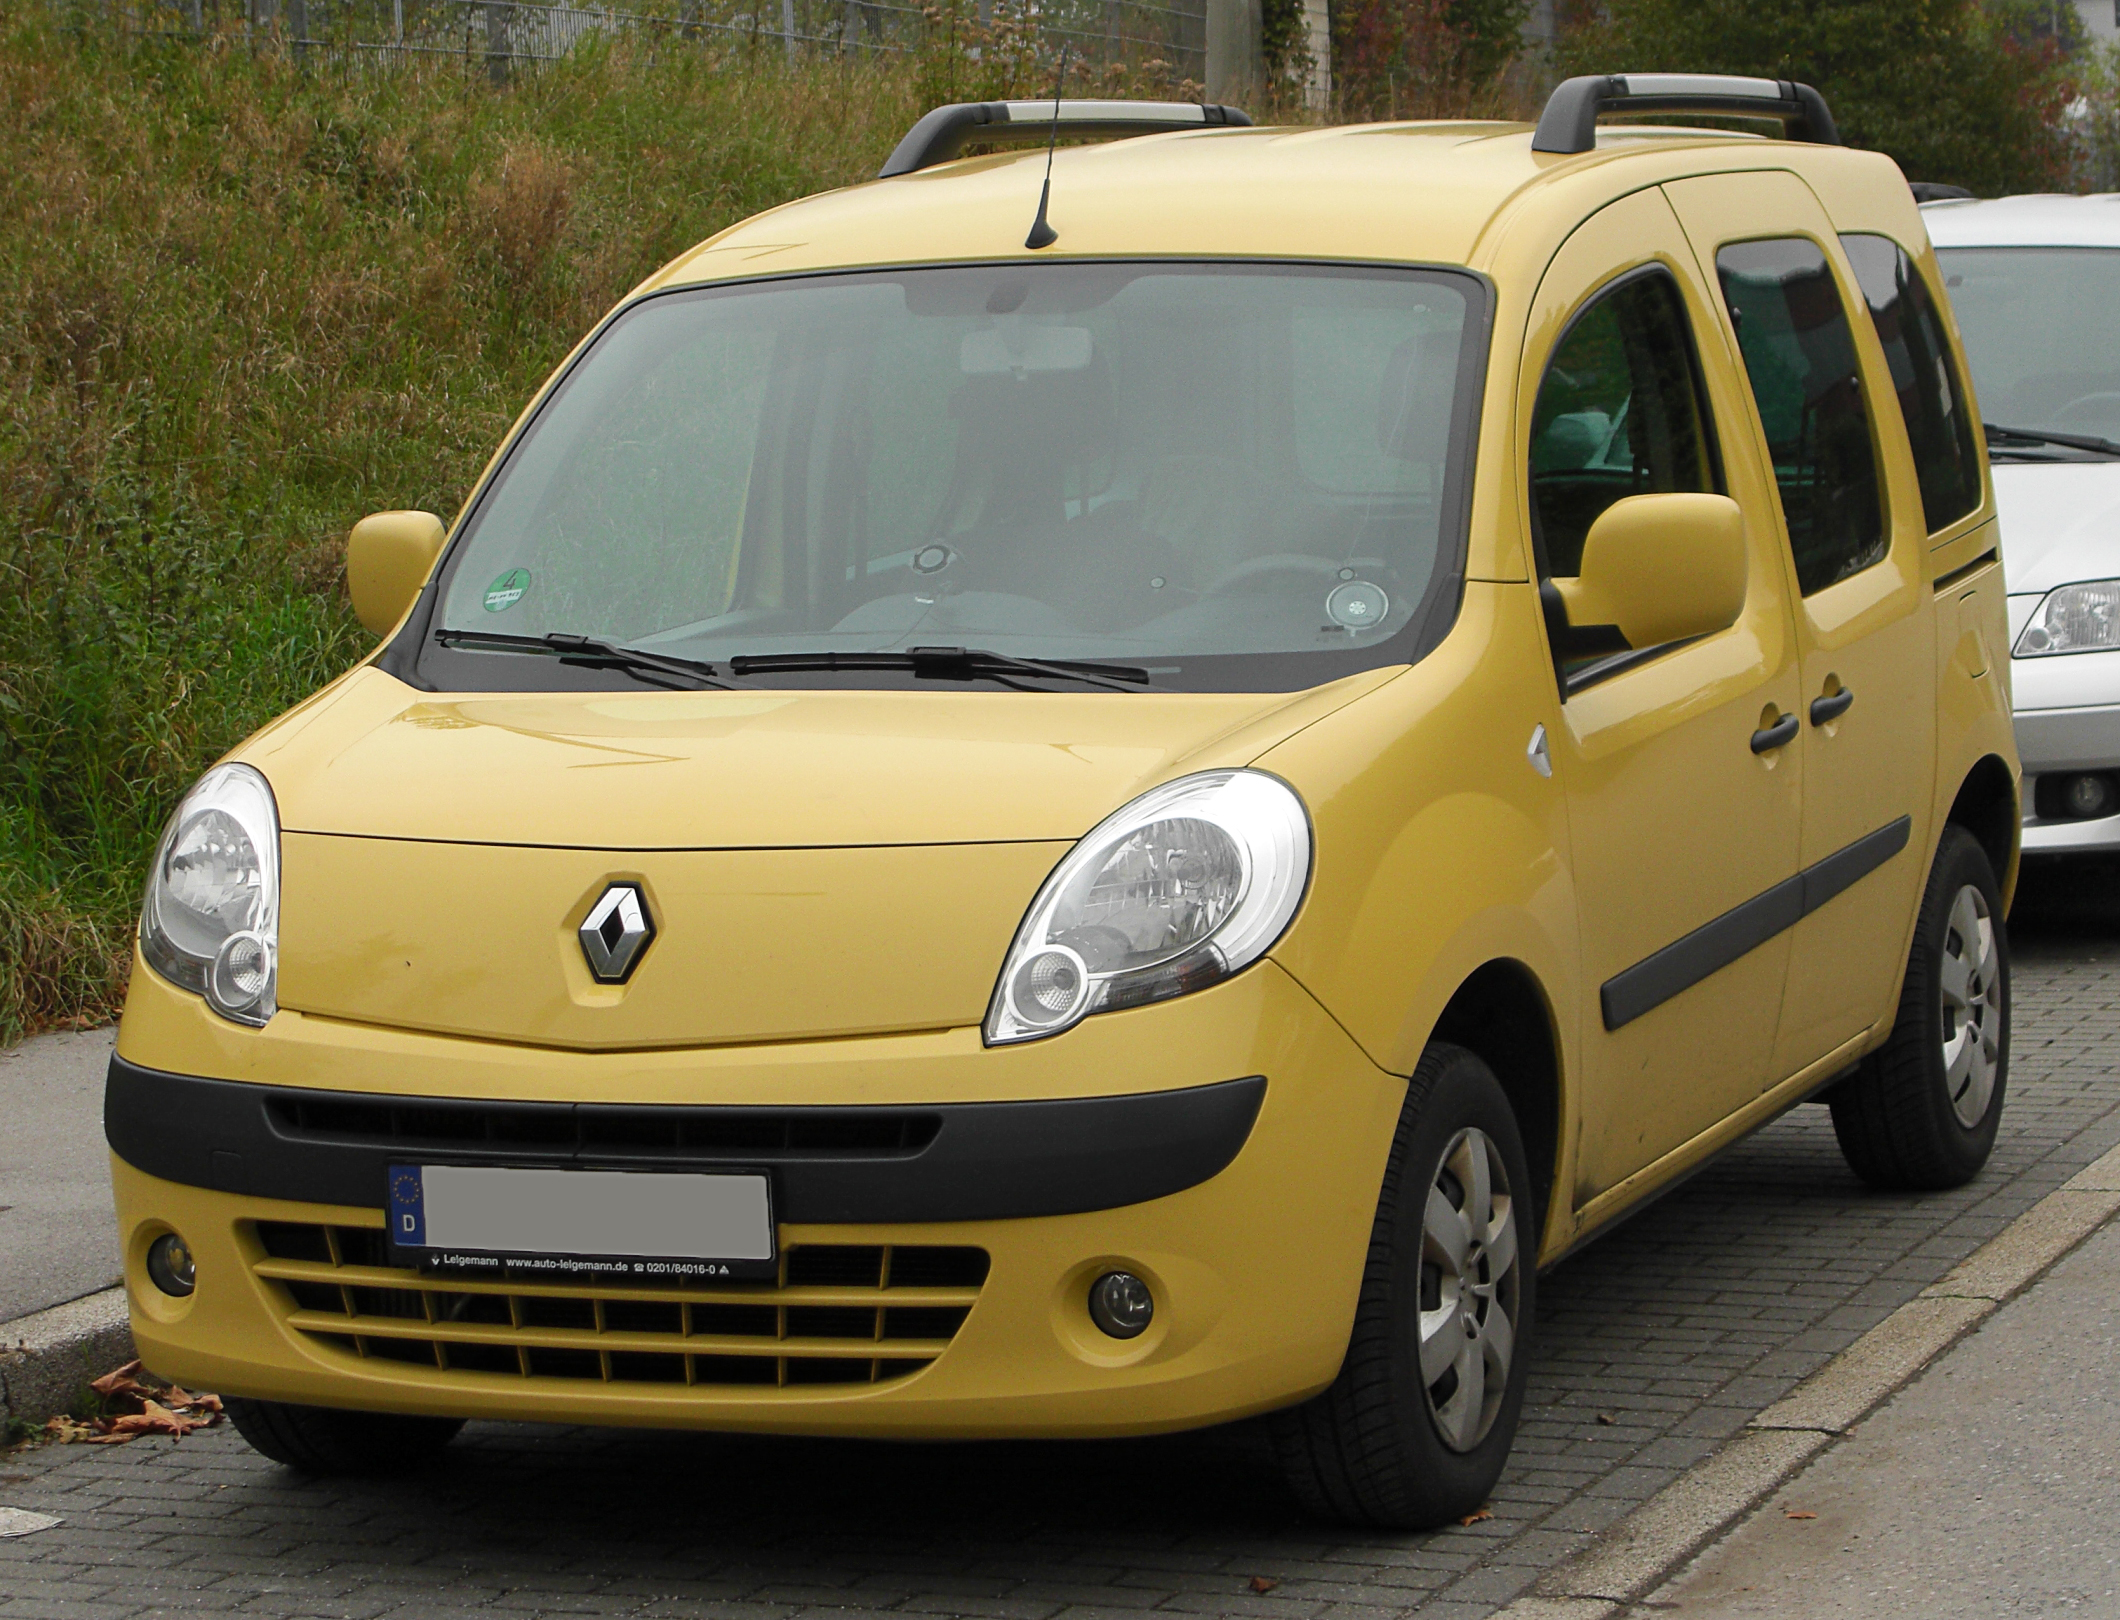 file renault kangoo ii front wikimedia commons. Black Bedroom Furniture Sets. Home Design Ideas